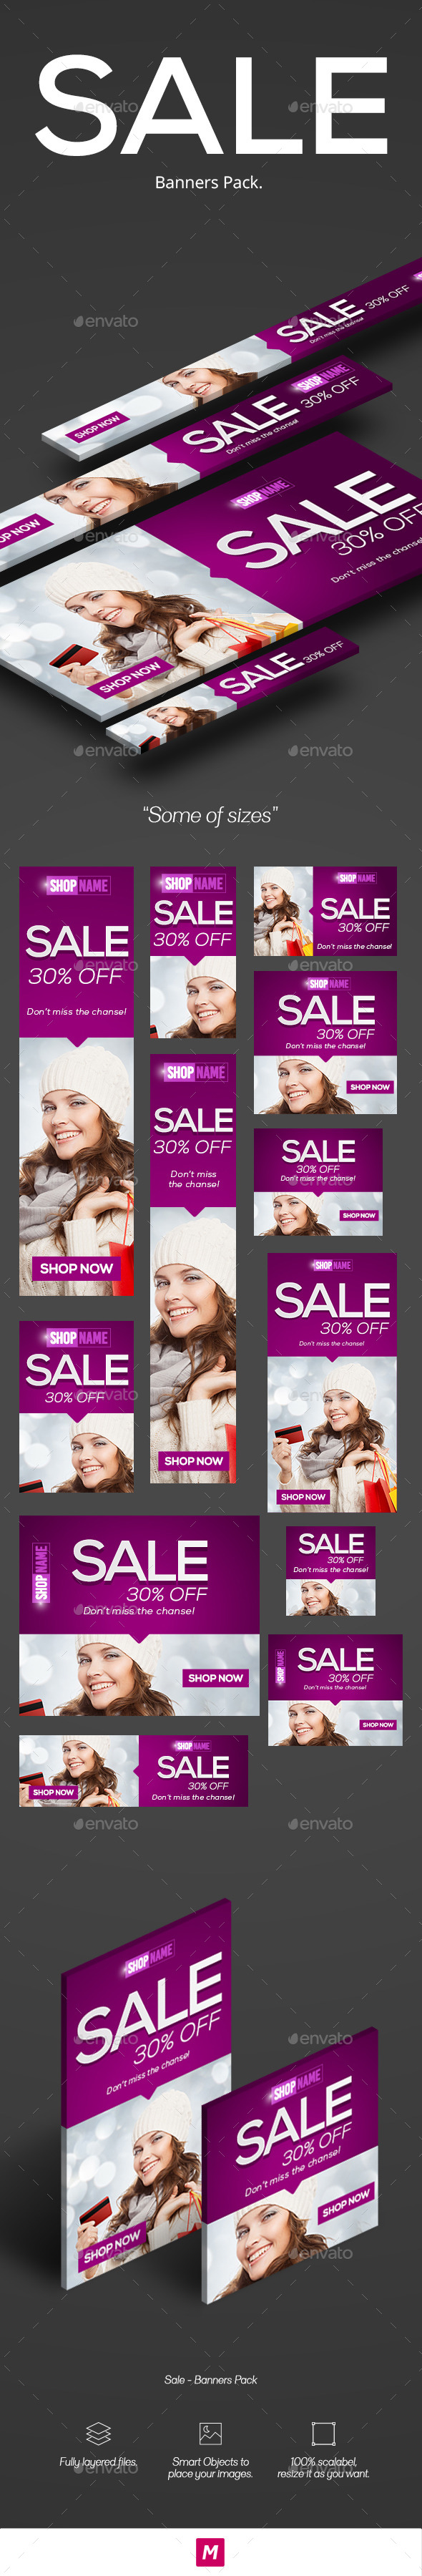 GraphicRiver Sale Banners Pack 11967385